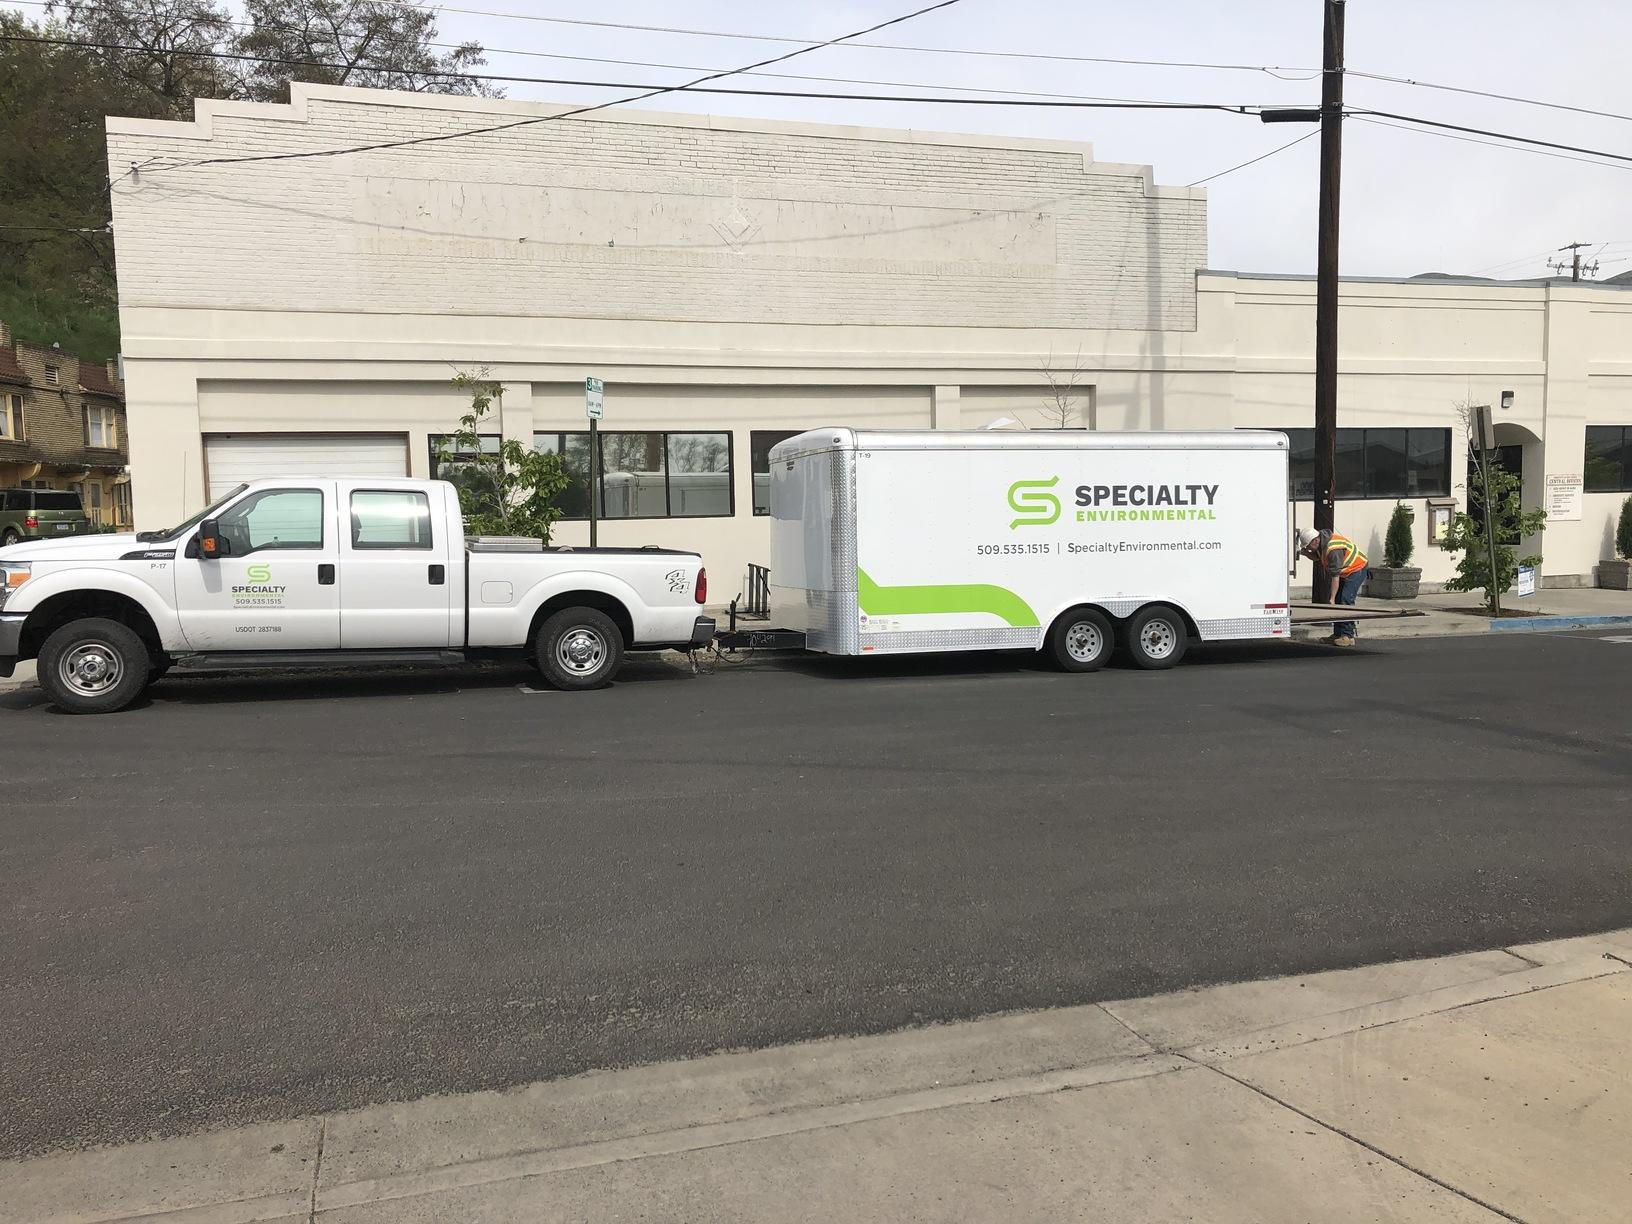 Specialty Environmental Truck and Trailer